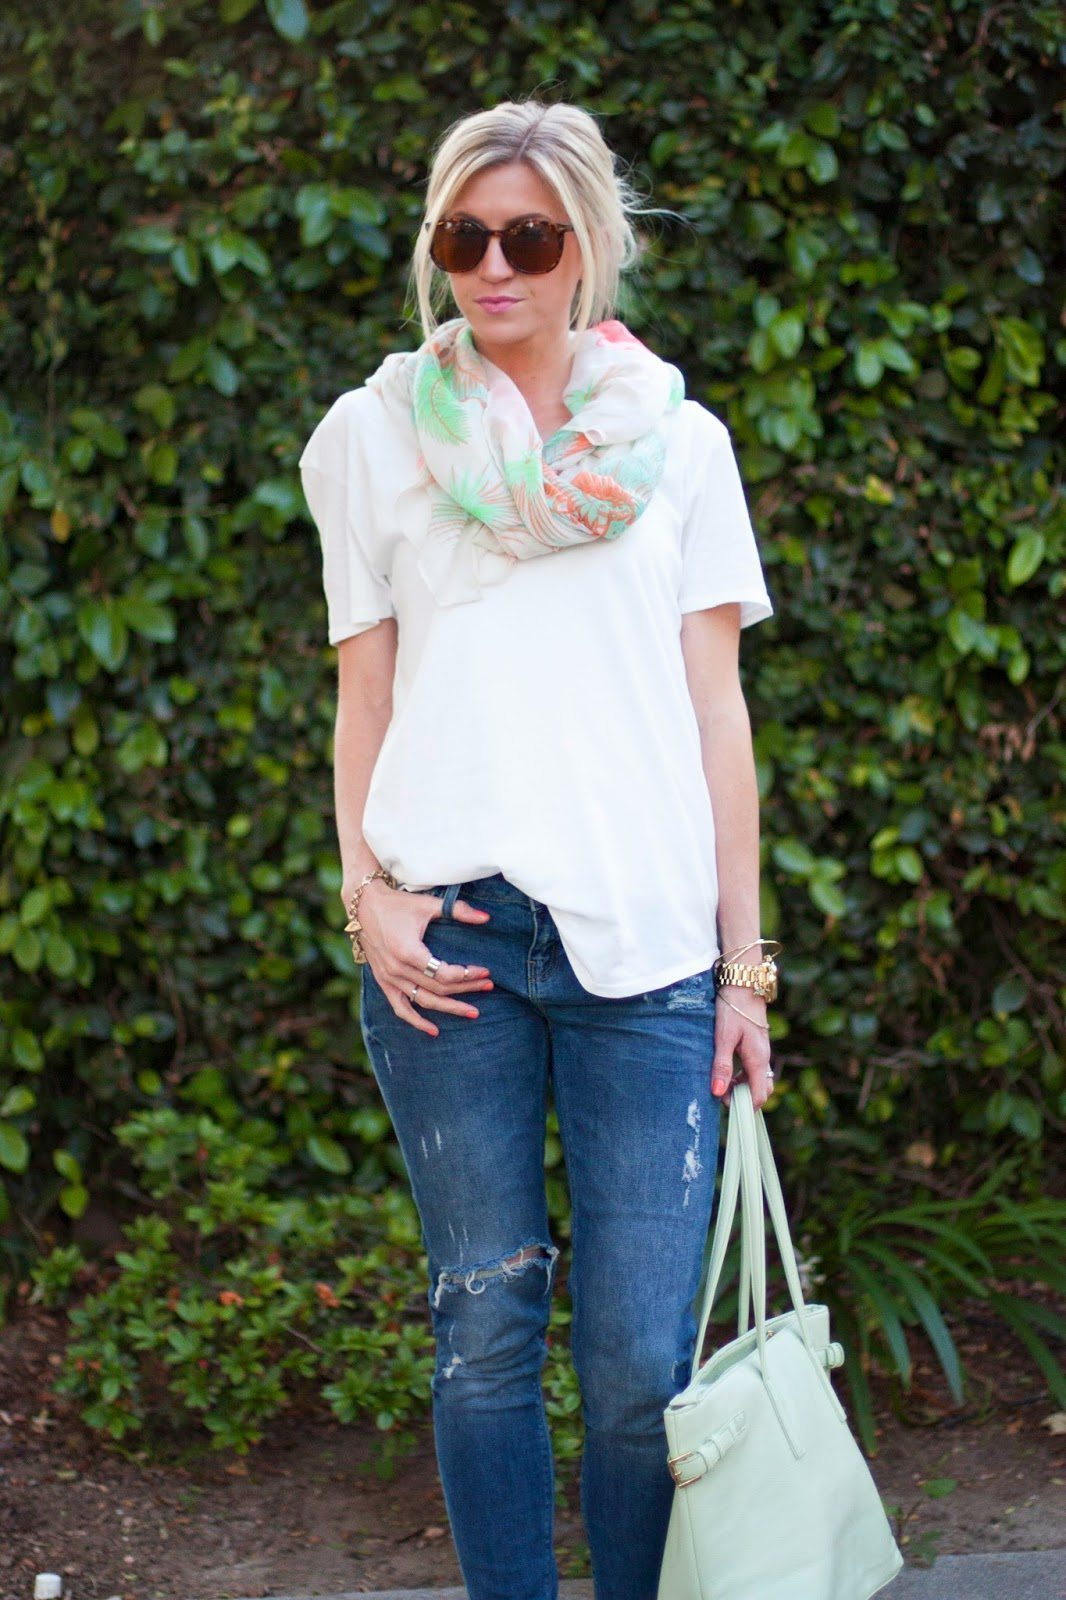 SPRING FLORAL WITH LULU*S (+ $500 GIFTCARD GIVEAWAY!)